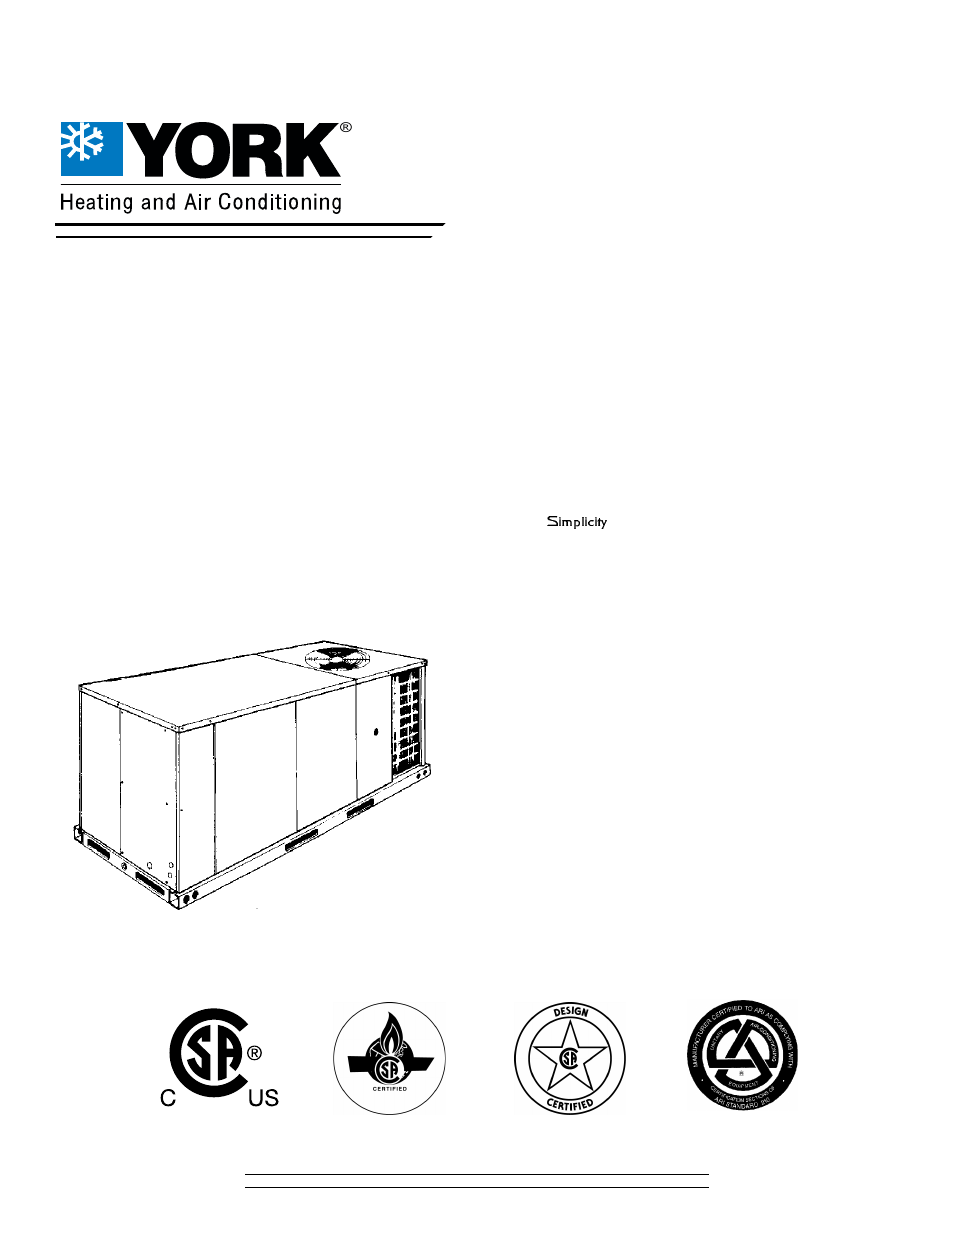 york air conditioners user manual book db